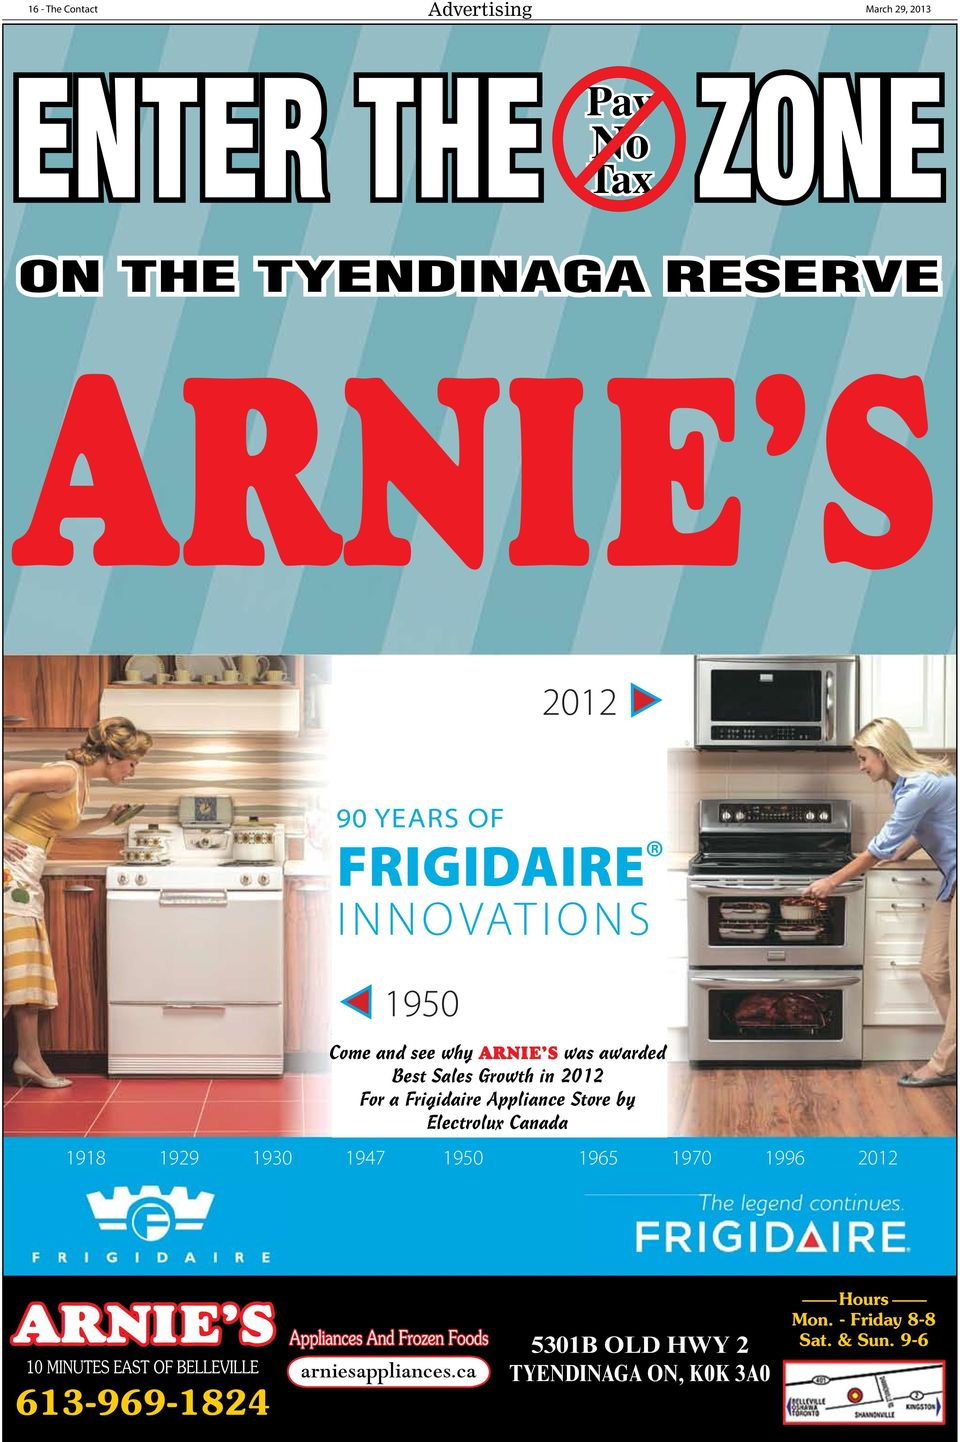 2012 For a Frigidaire Appliance Store by Electrolux Canada 1918 1929 1930 1947 1950 1965 1970 1996